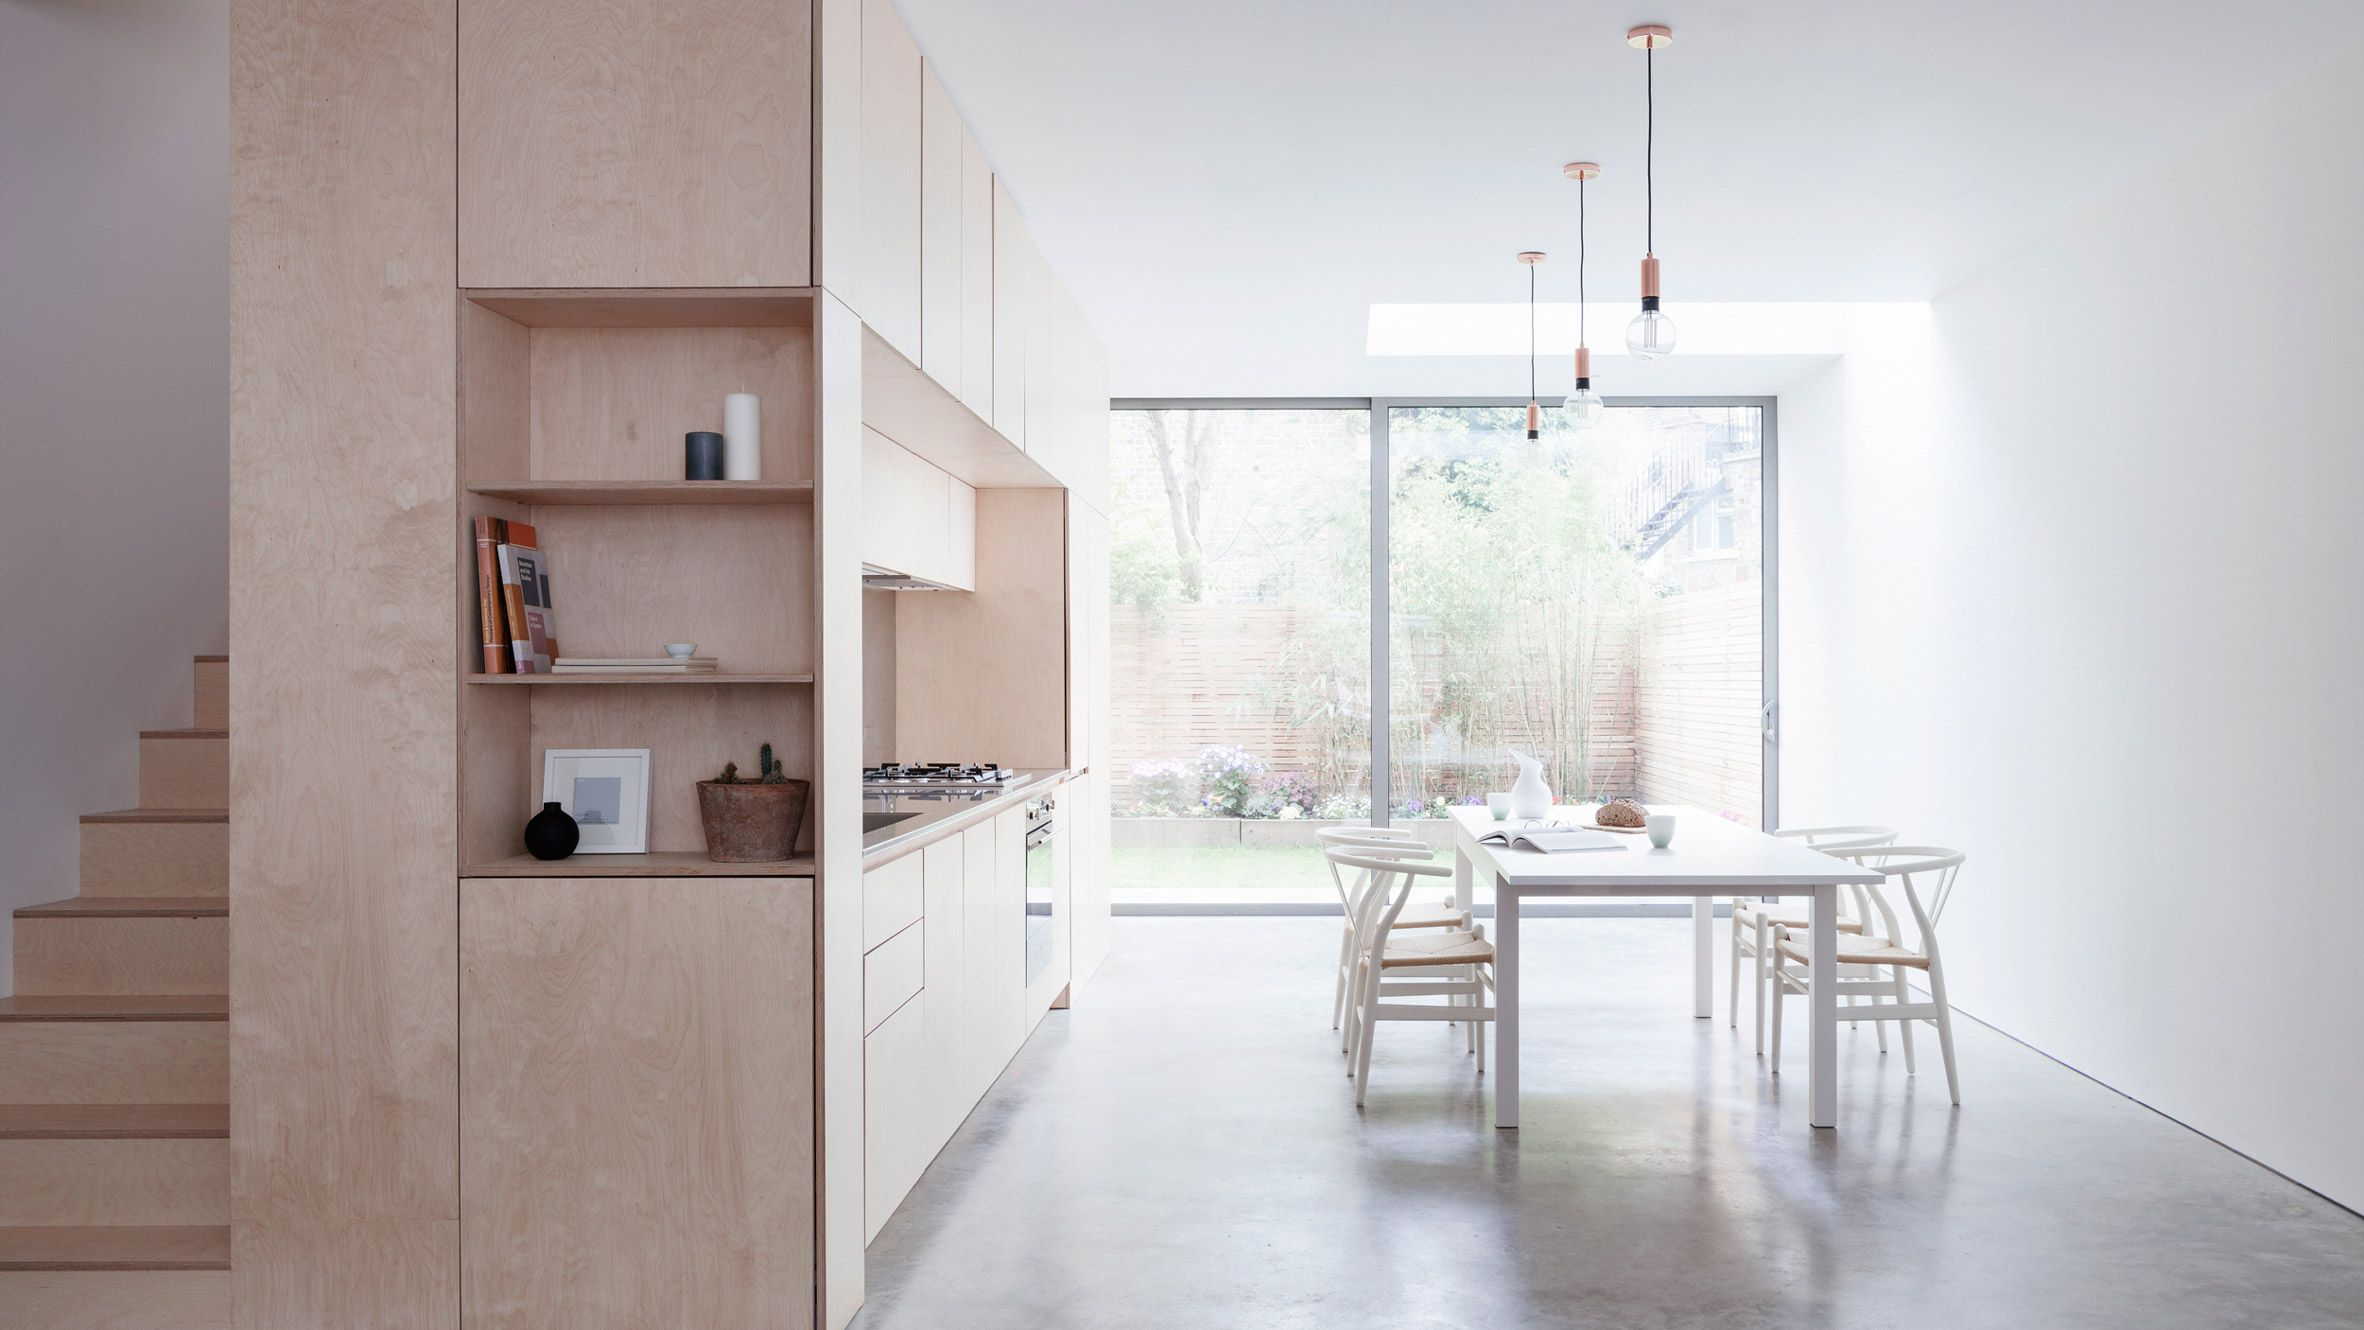 A plywood box hosts the kitchen and staircase in this maisonette in